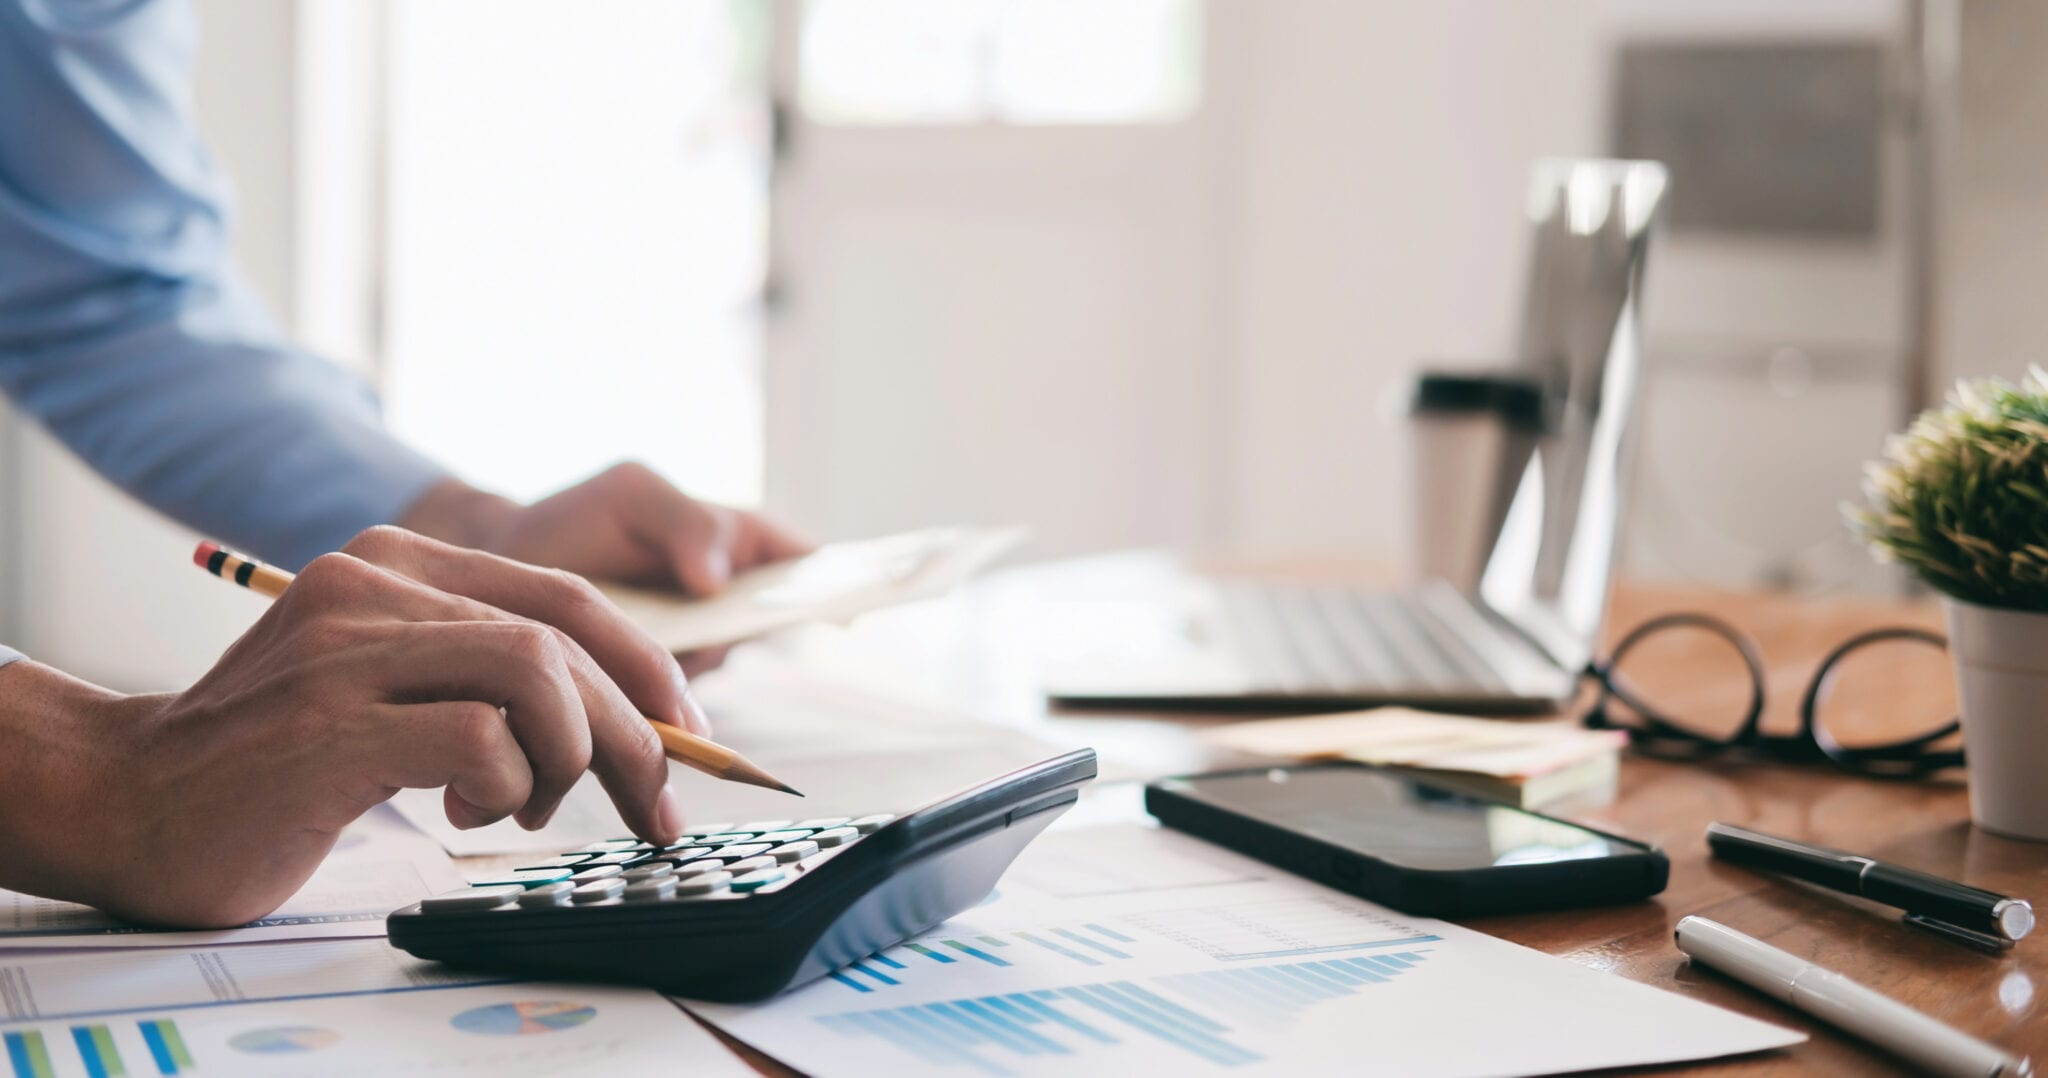 You are currently viewing Managing Your Cash Flow Through the Holiday Period